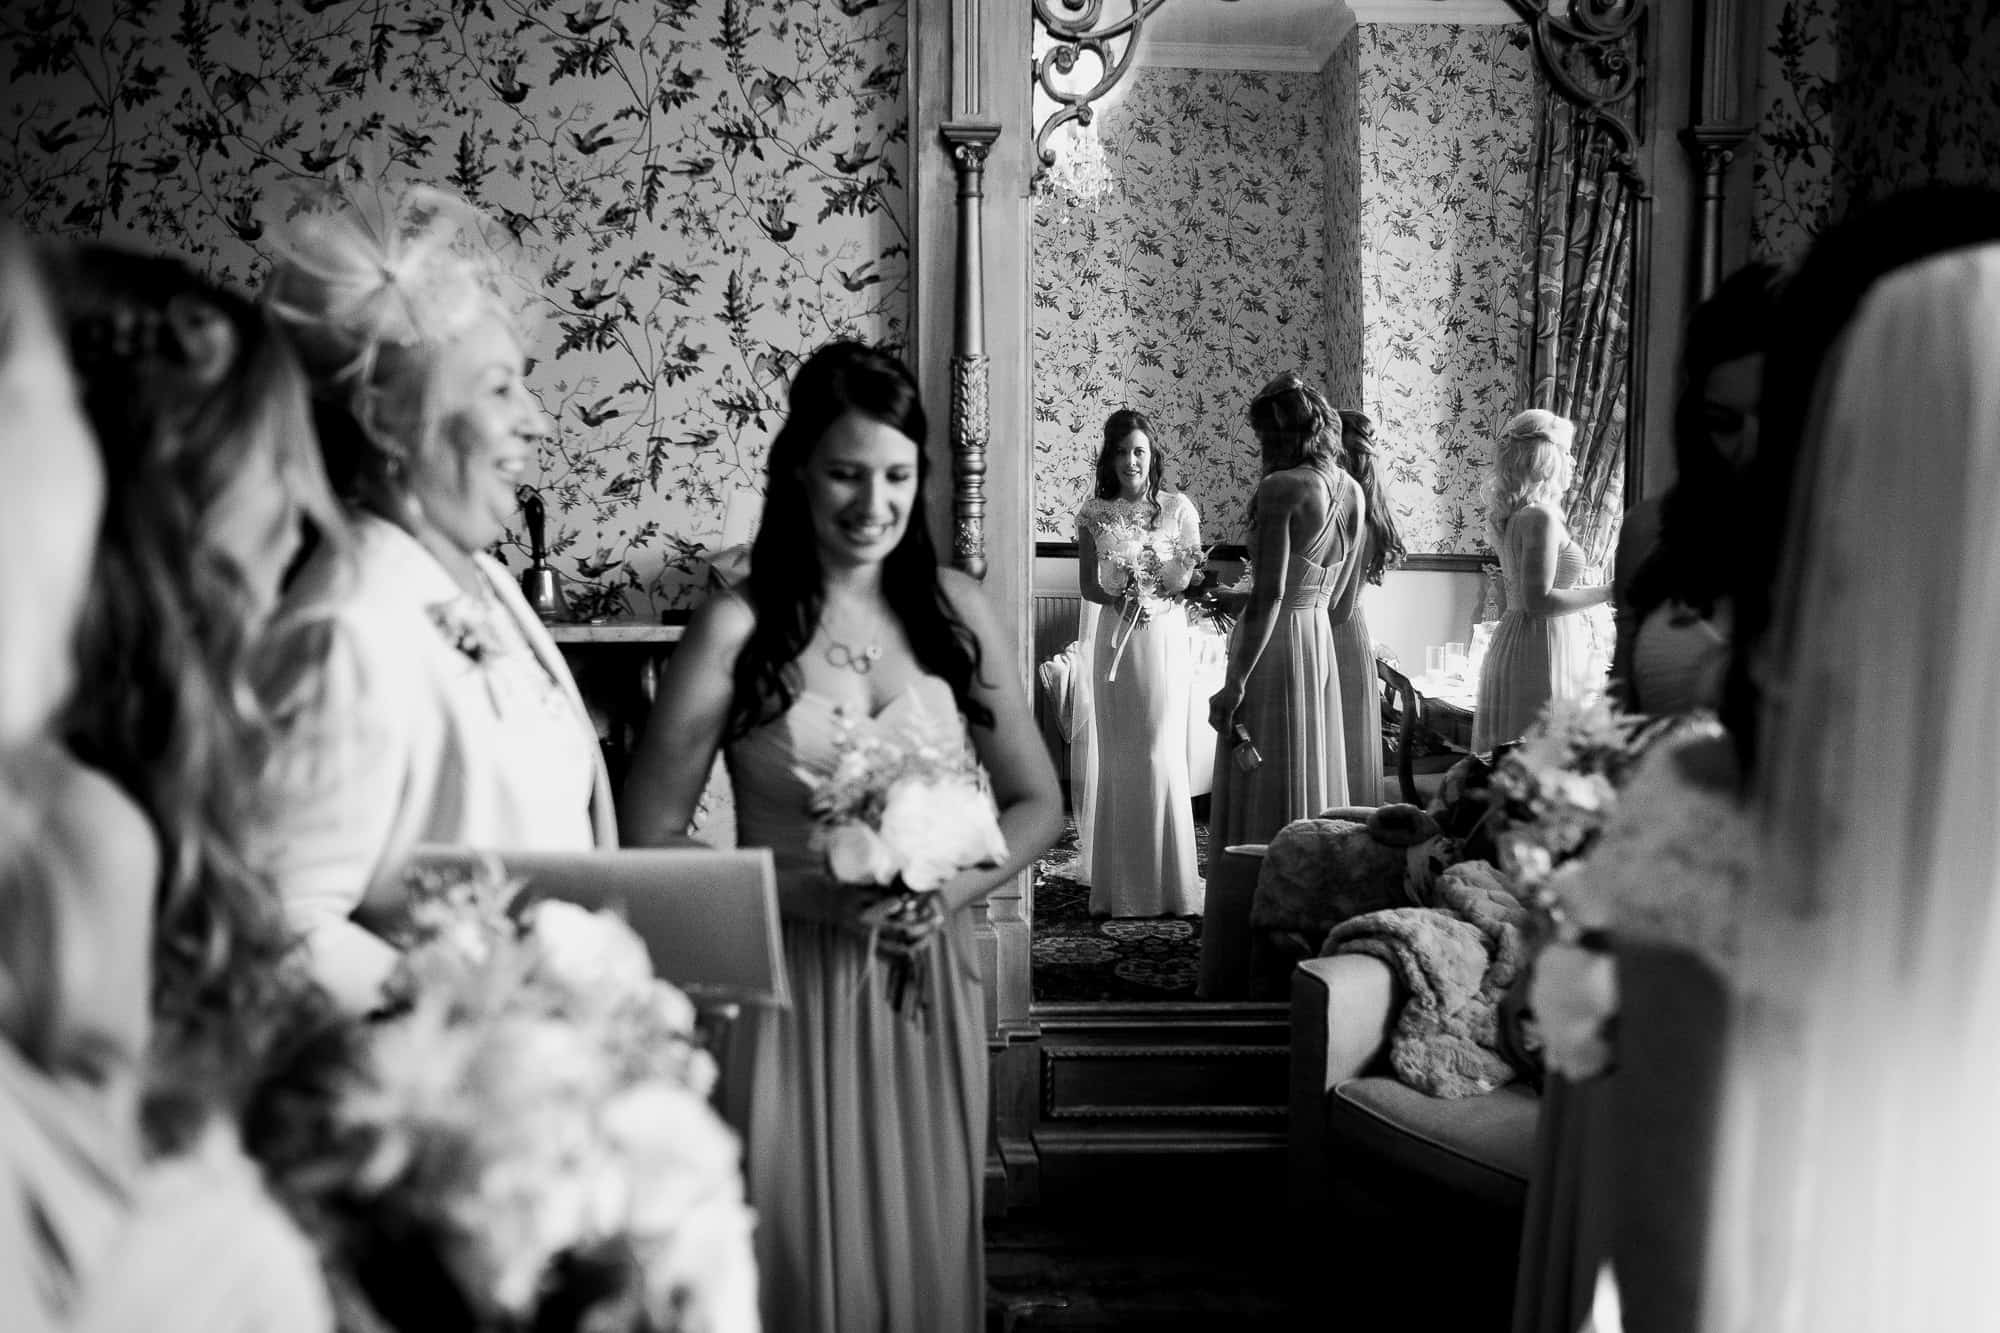 huntsham-court-wedding-photography-matt-tyler-0019